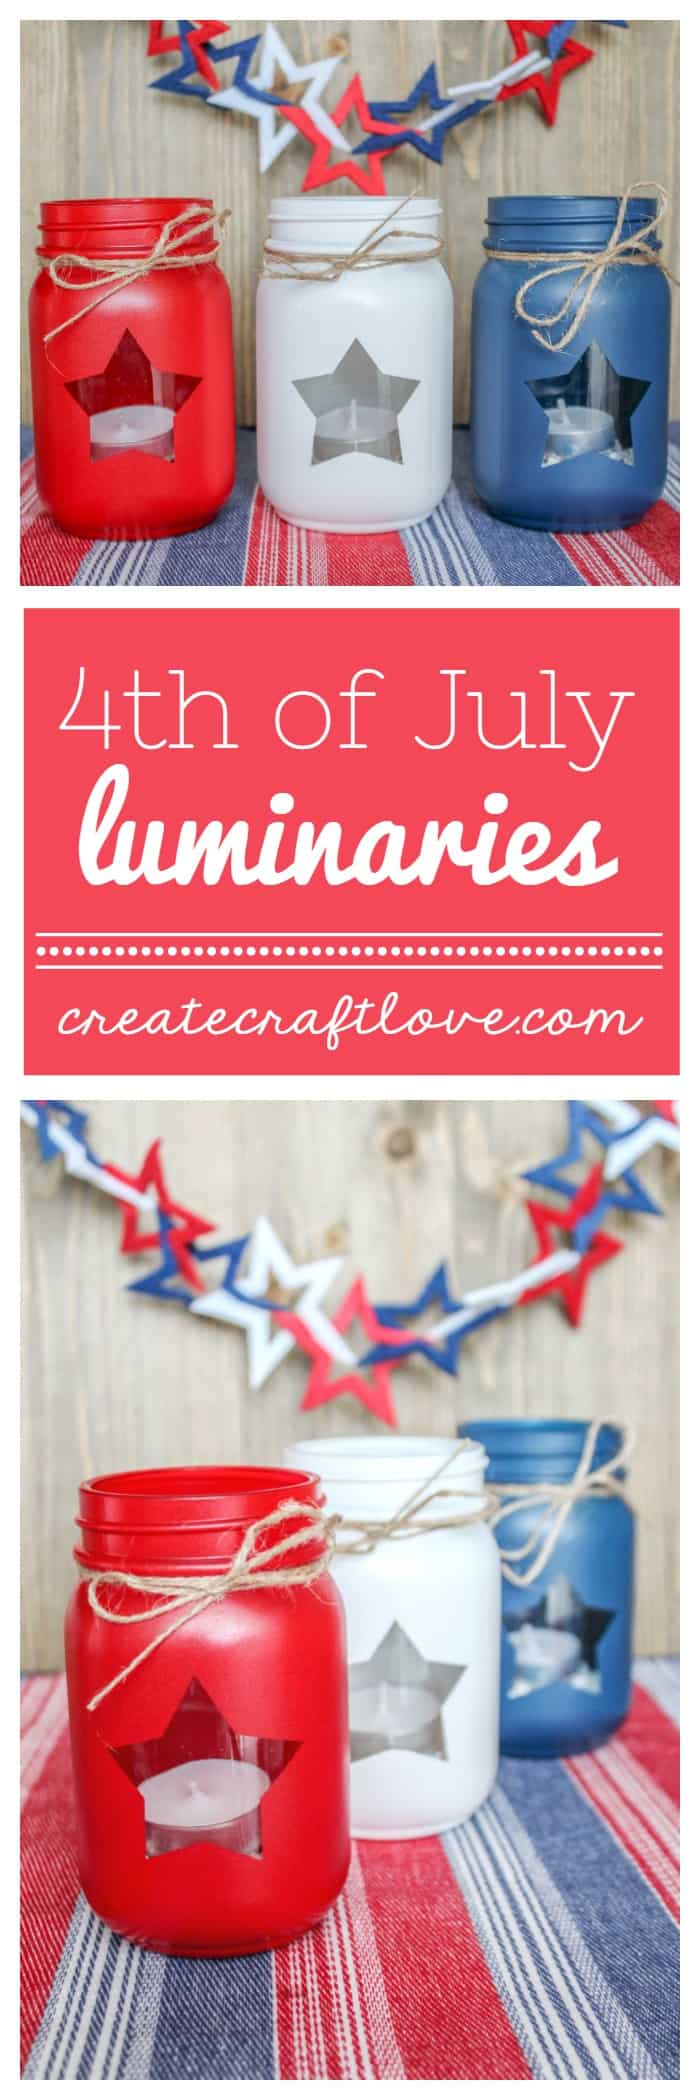 How cute are these Patriotic Mason Jar Lanterns?!